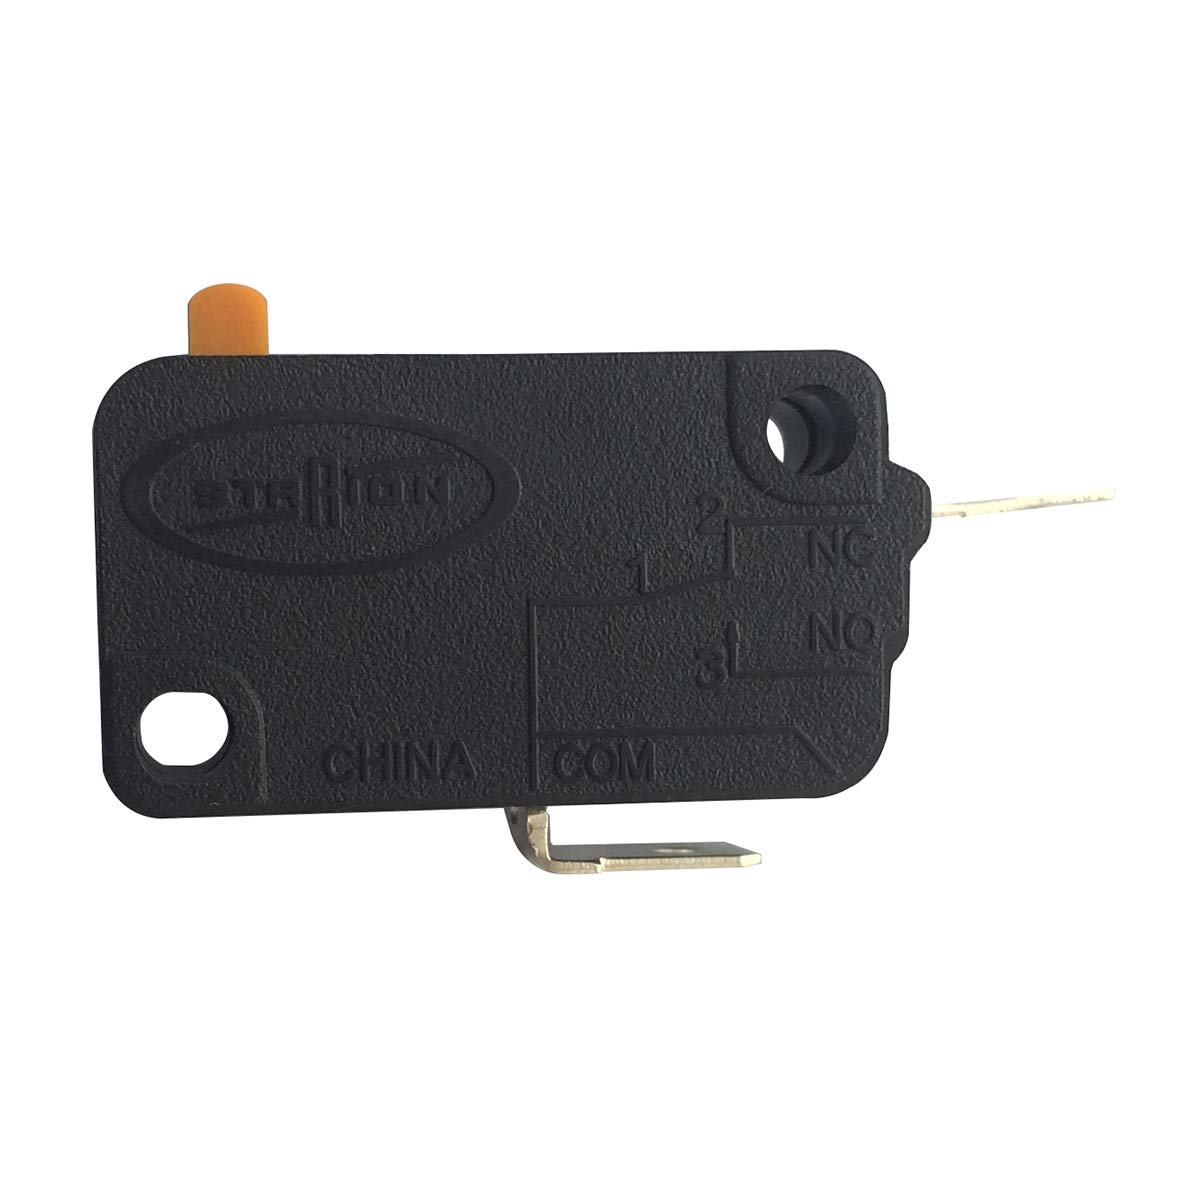 Pack of 2 Normally Closed LONYE SZM-V16-FD-62 WB24X830 Monitor Switch RE2 for GE Starion Microwave WB24X0800 WB24X800 AP2024338 PS237422